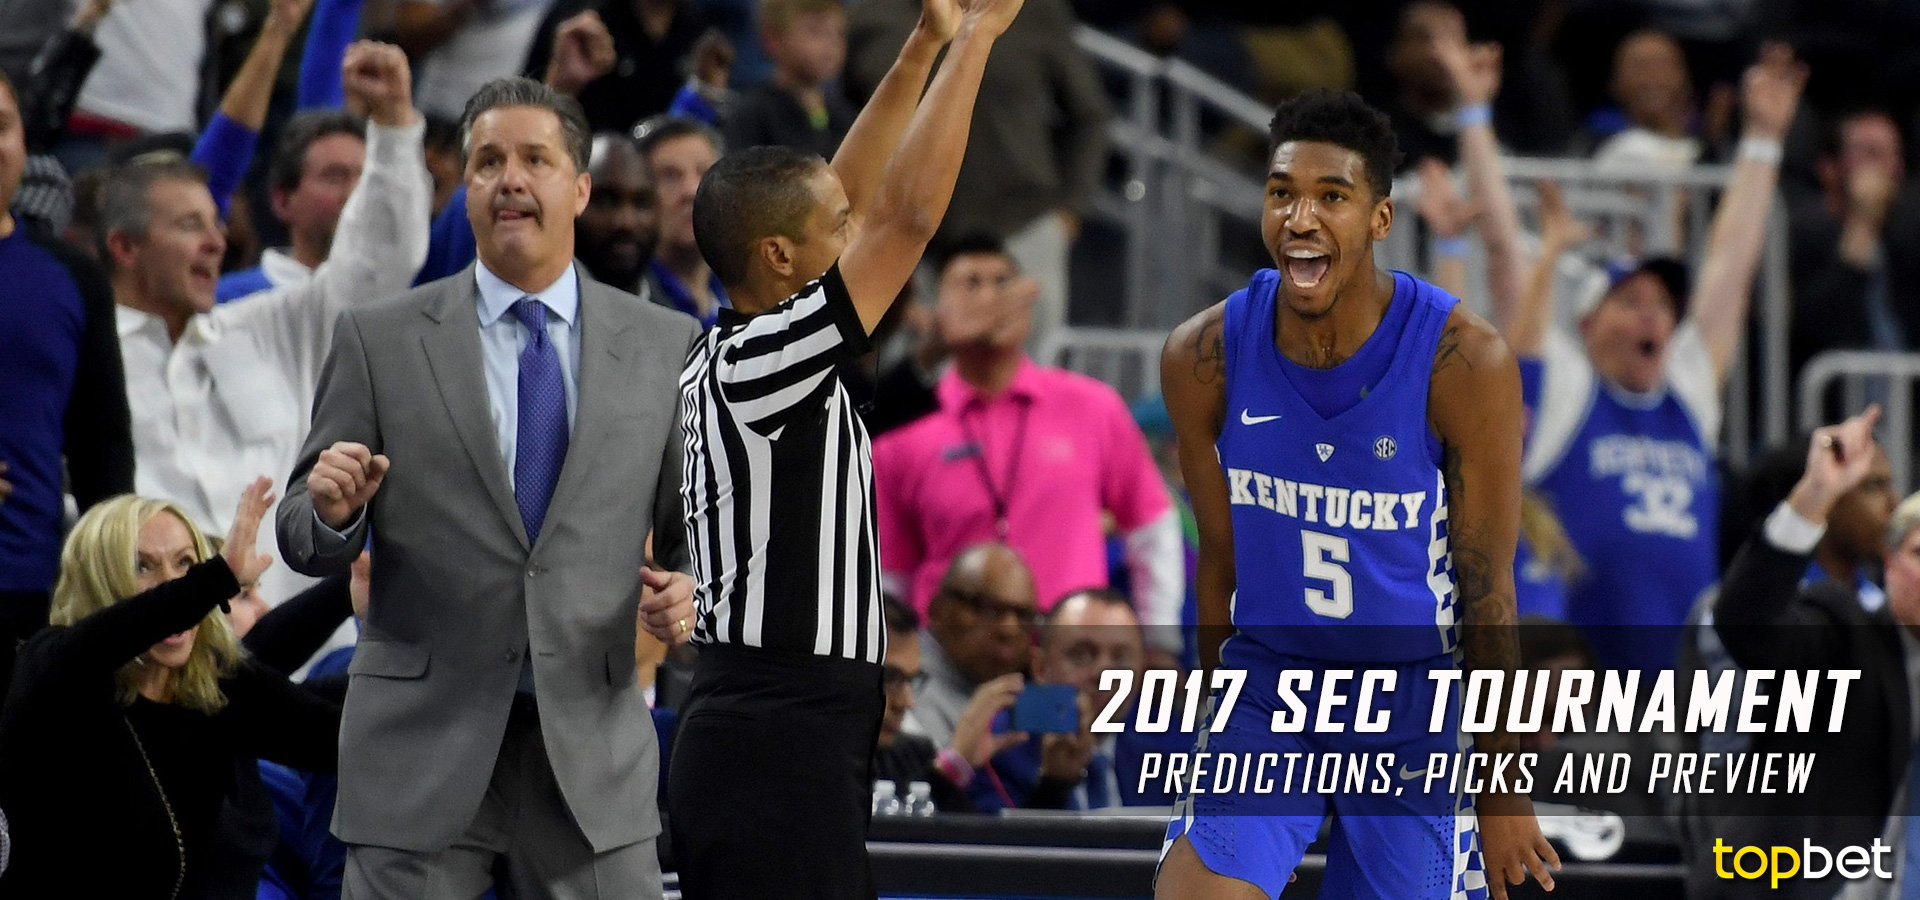 Kentucky Basketball 2017 18 Season Preview For The Wildcats: 2017 SEC Basketball Championship Predictions And Preview